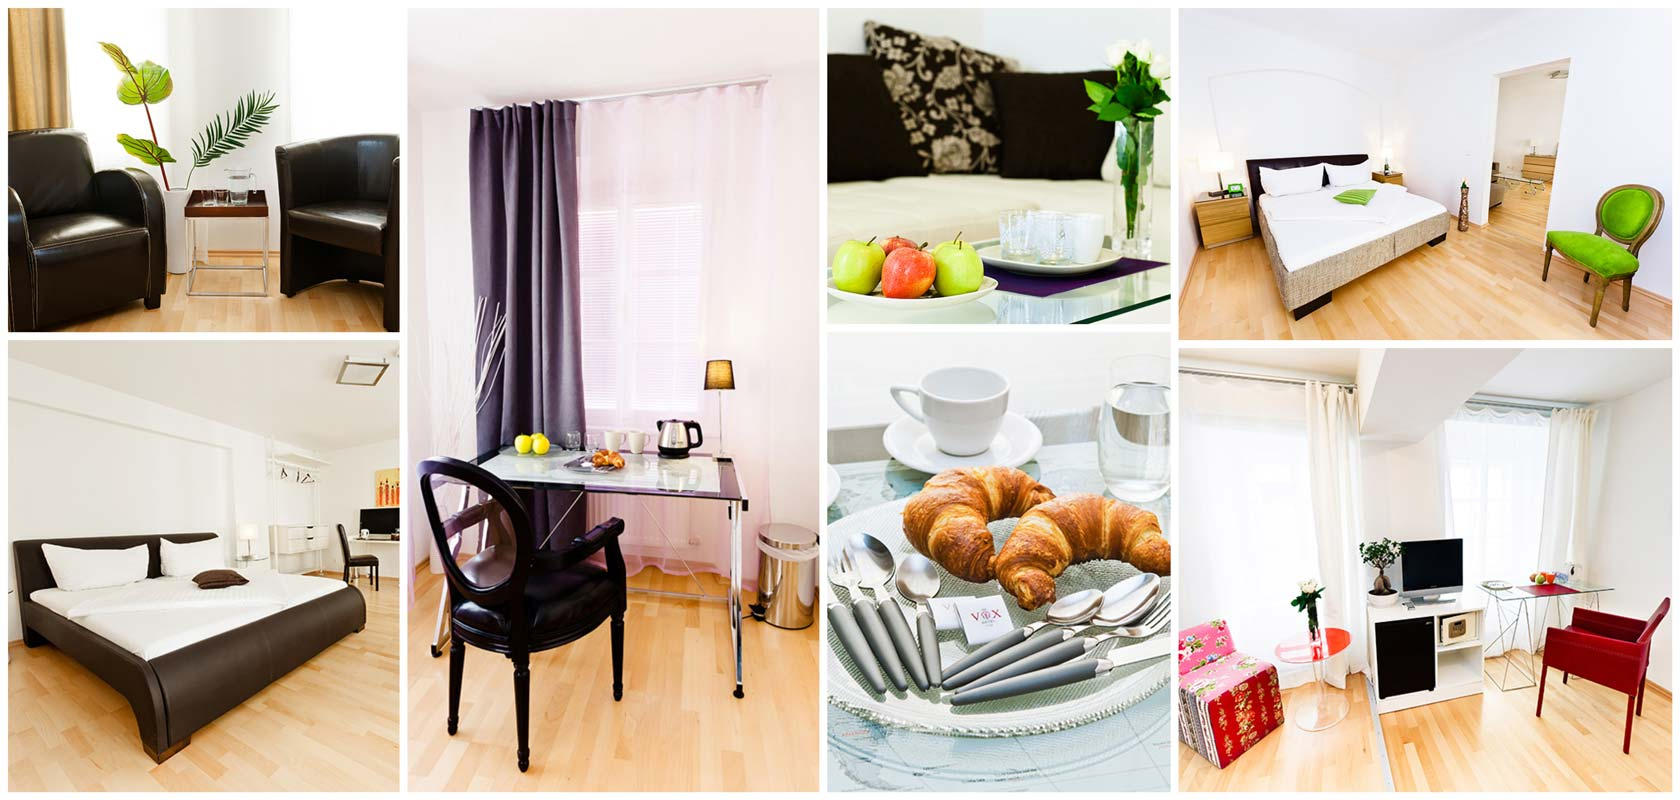 Vox Apartment Hotel in Wien Leopoldstadt Collage